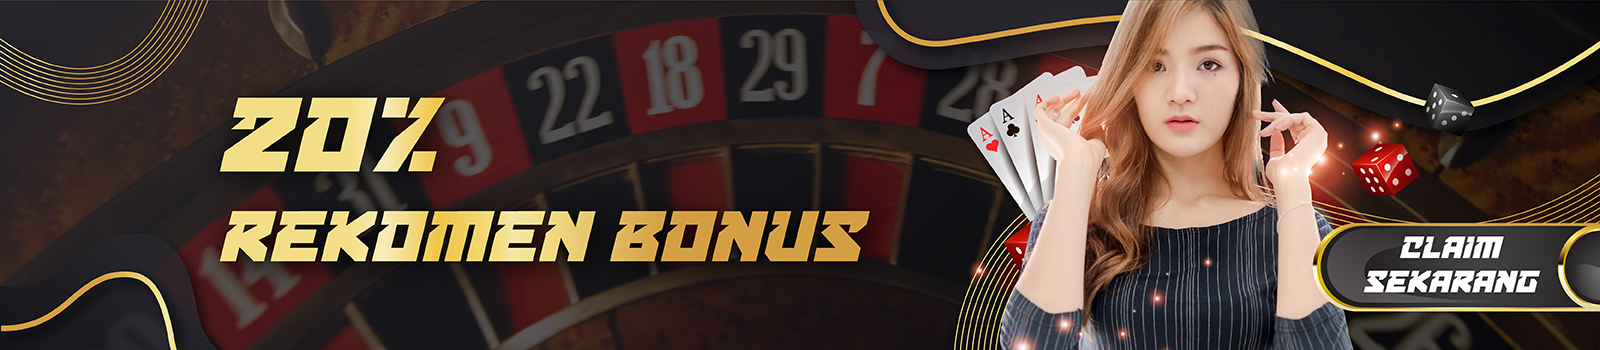 Online Casino Malaysia Welcome Referral Bonus